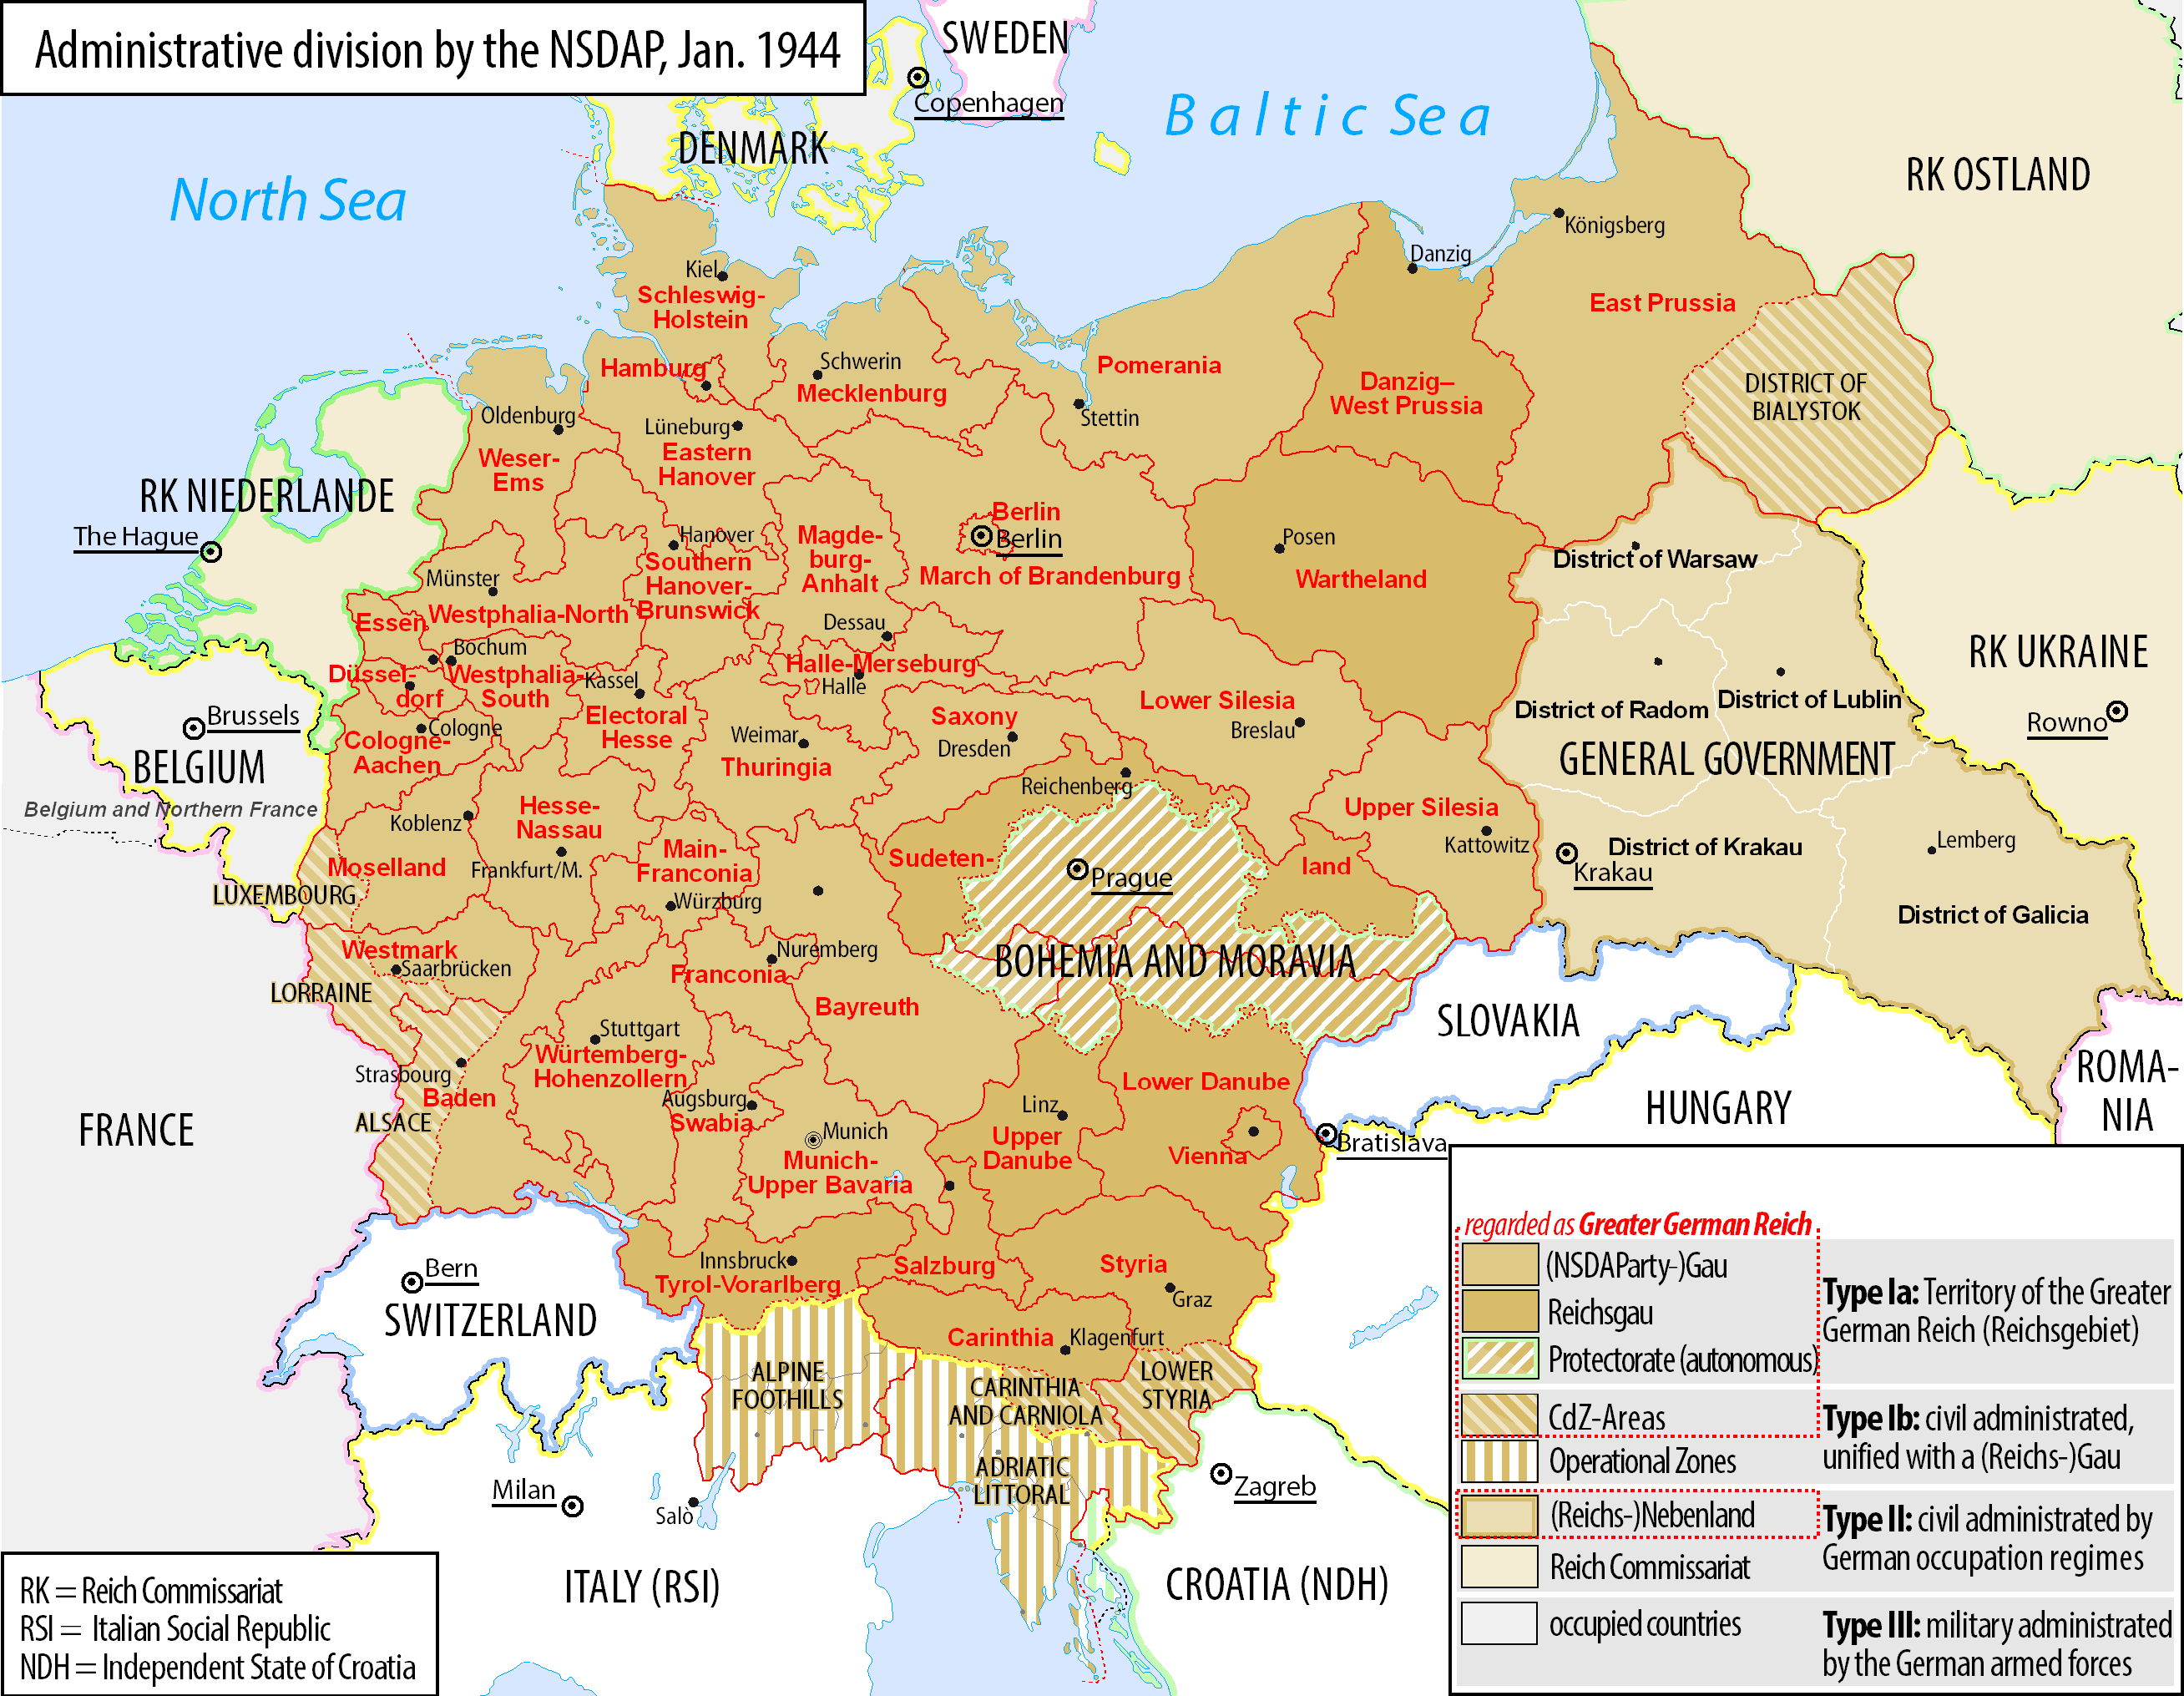 Greater_German_Reich_NS_Administration_1944_Variant.png